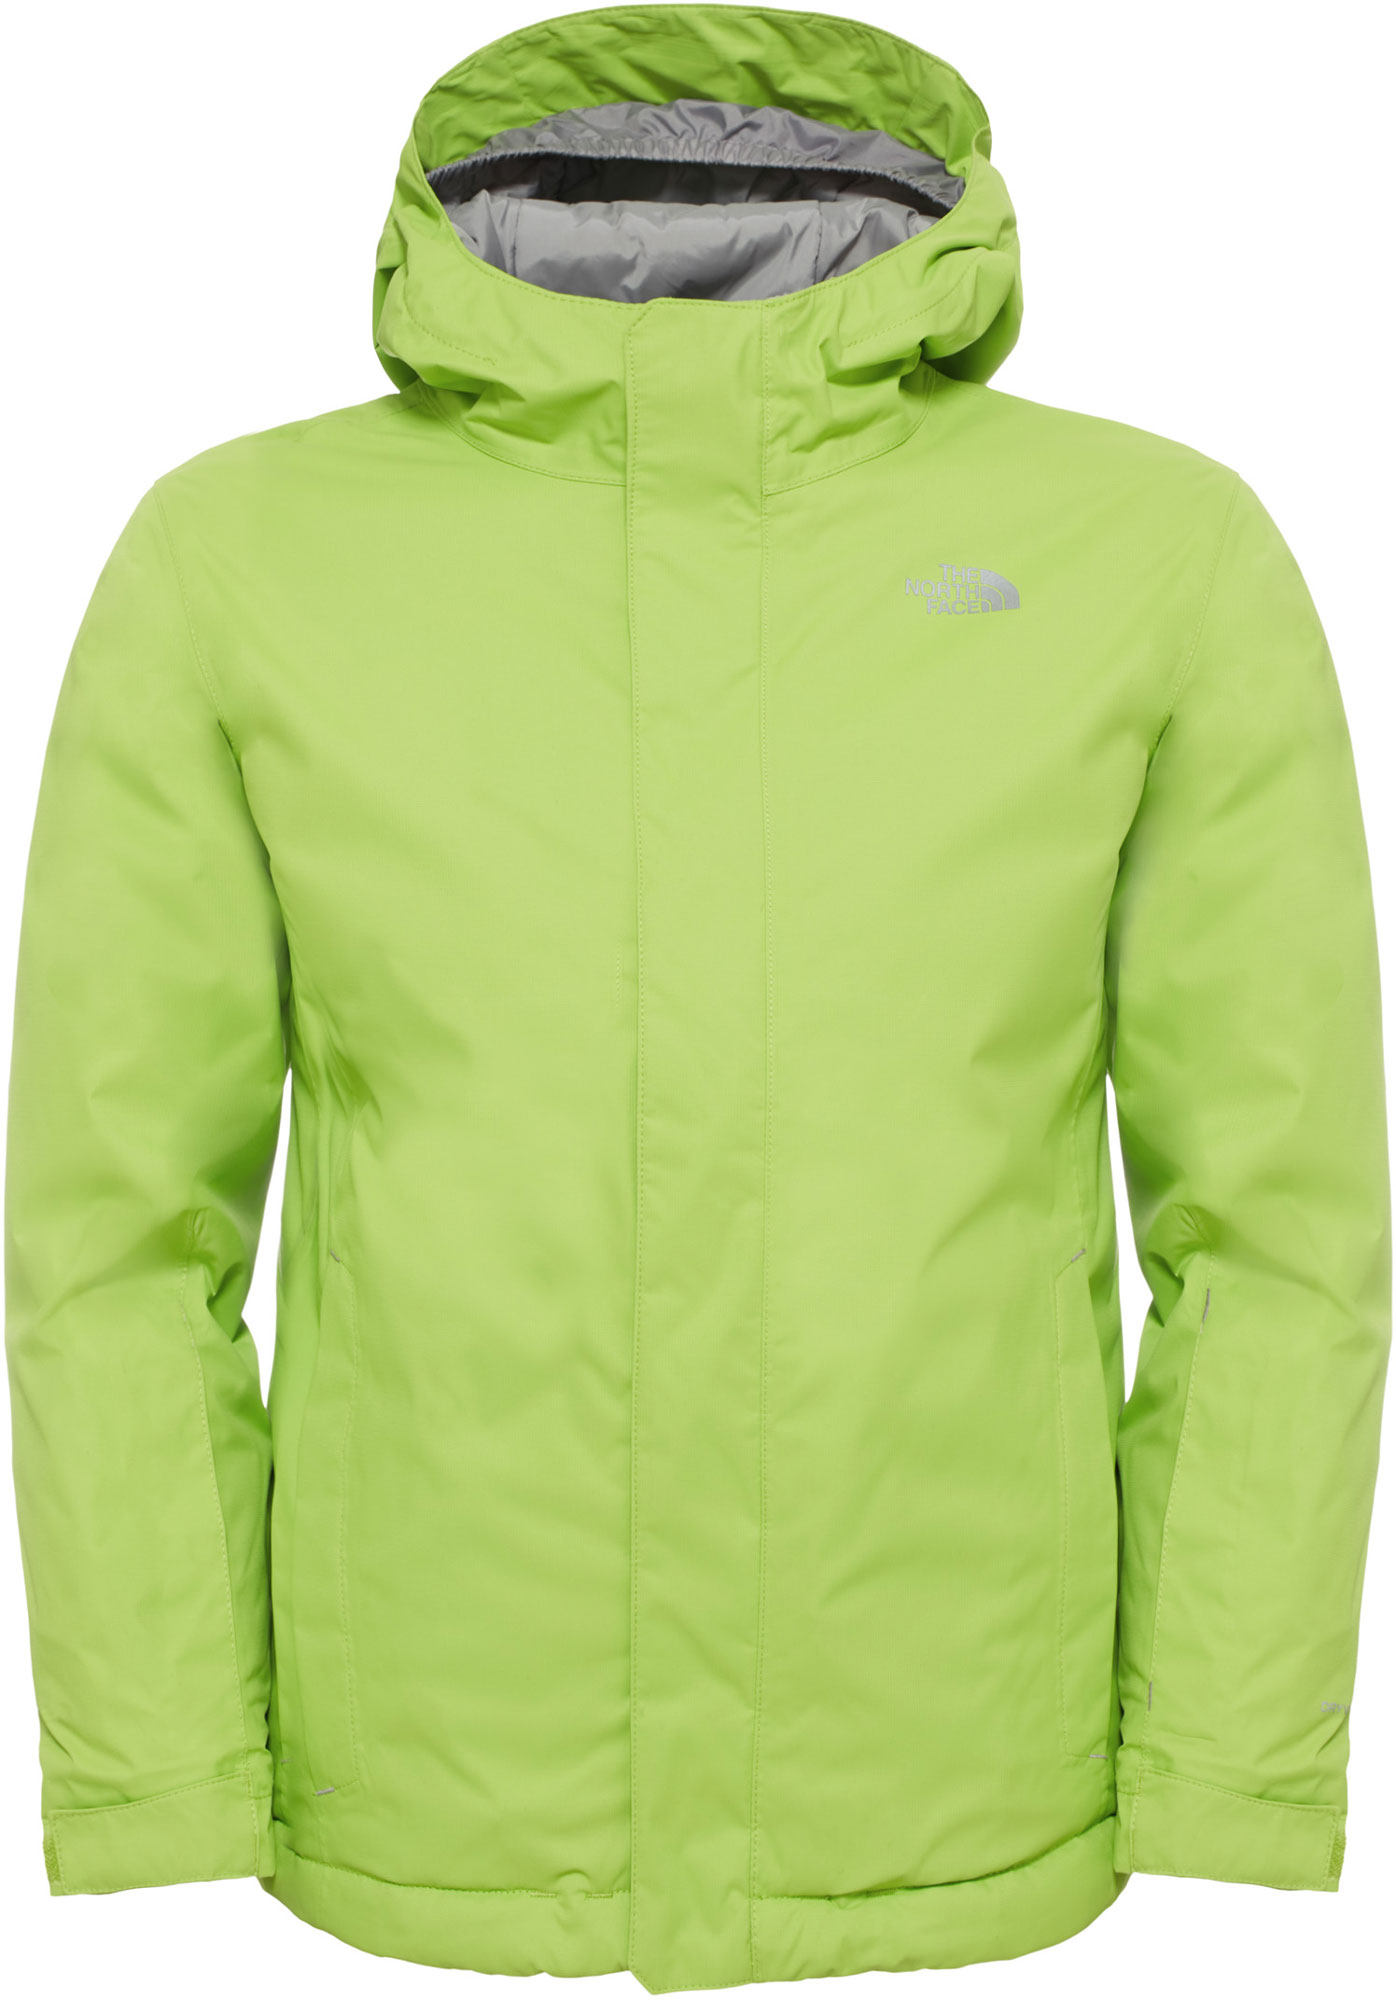 106db68f4 The North Face YOUTH SNOWQUEST JACKET | sportisimo.com